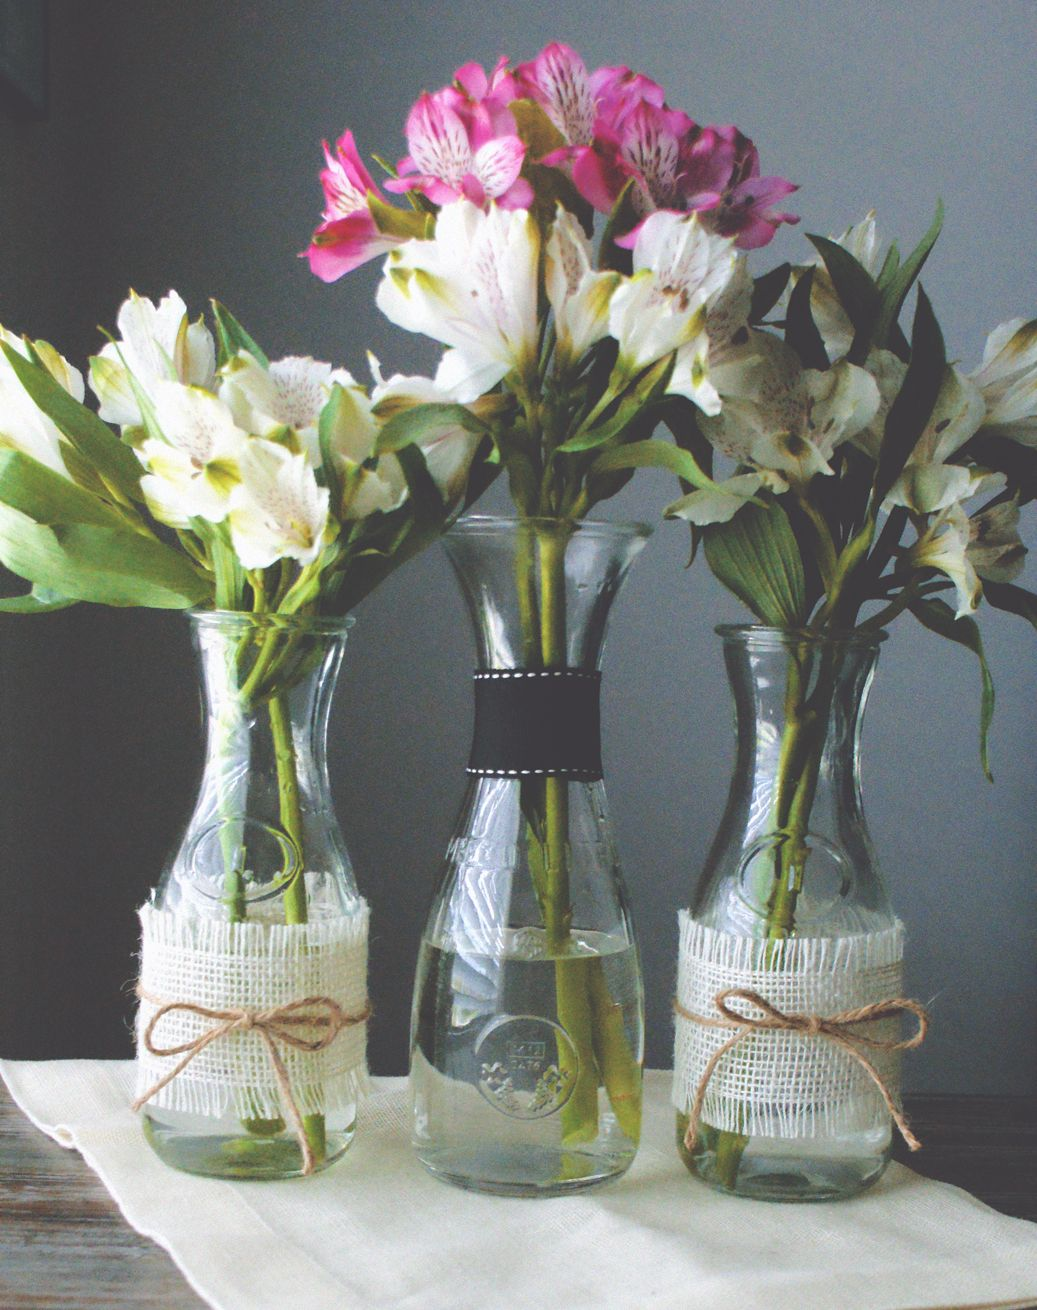 Flower vase kijiji - Find Out How To Add A Touch Of Chic To A Vase Jar Or